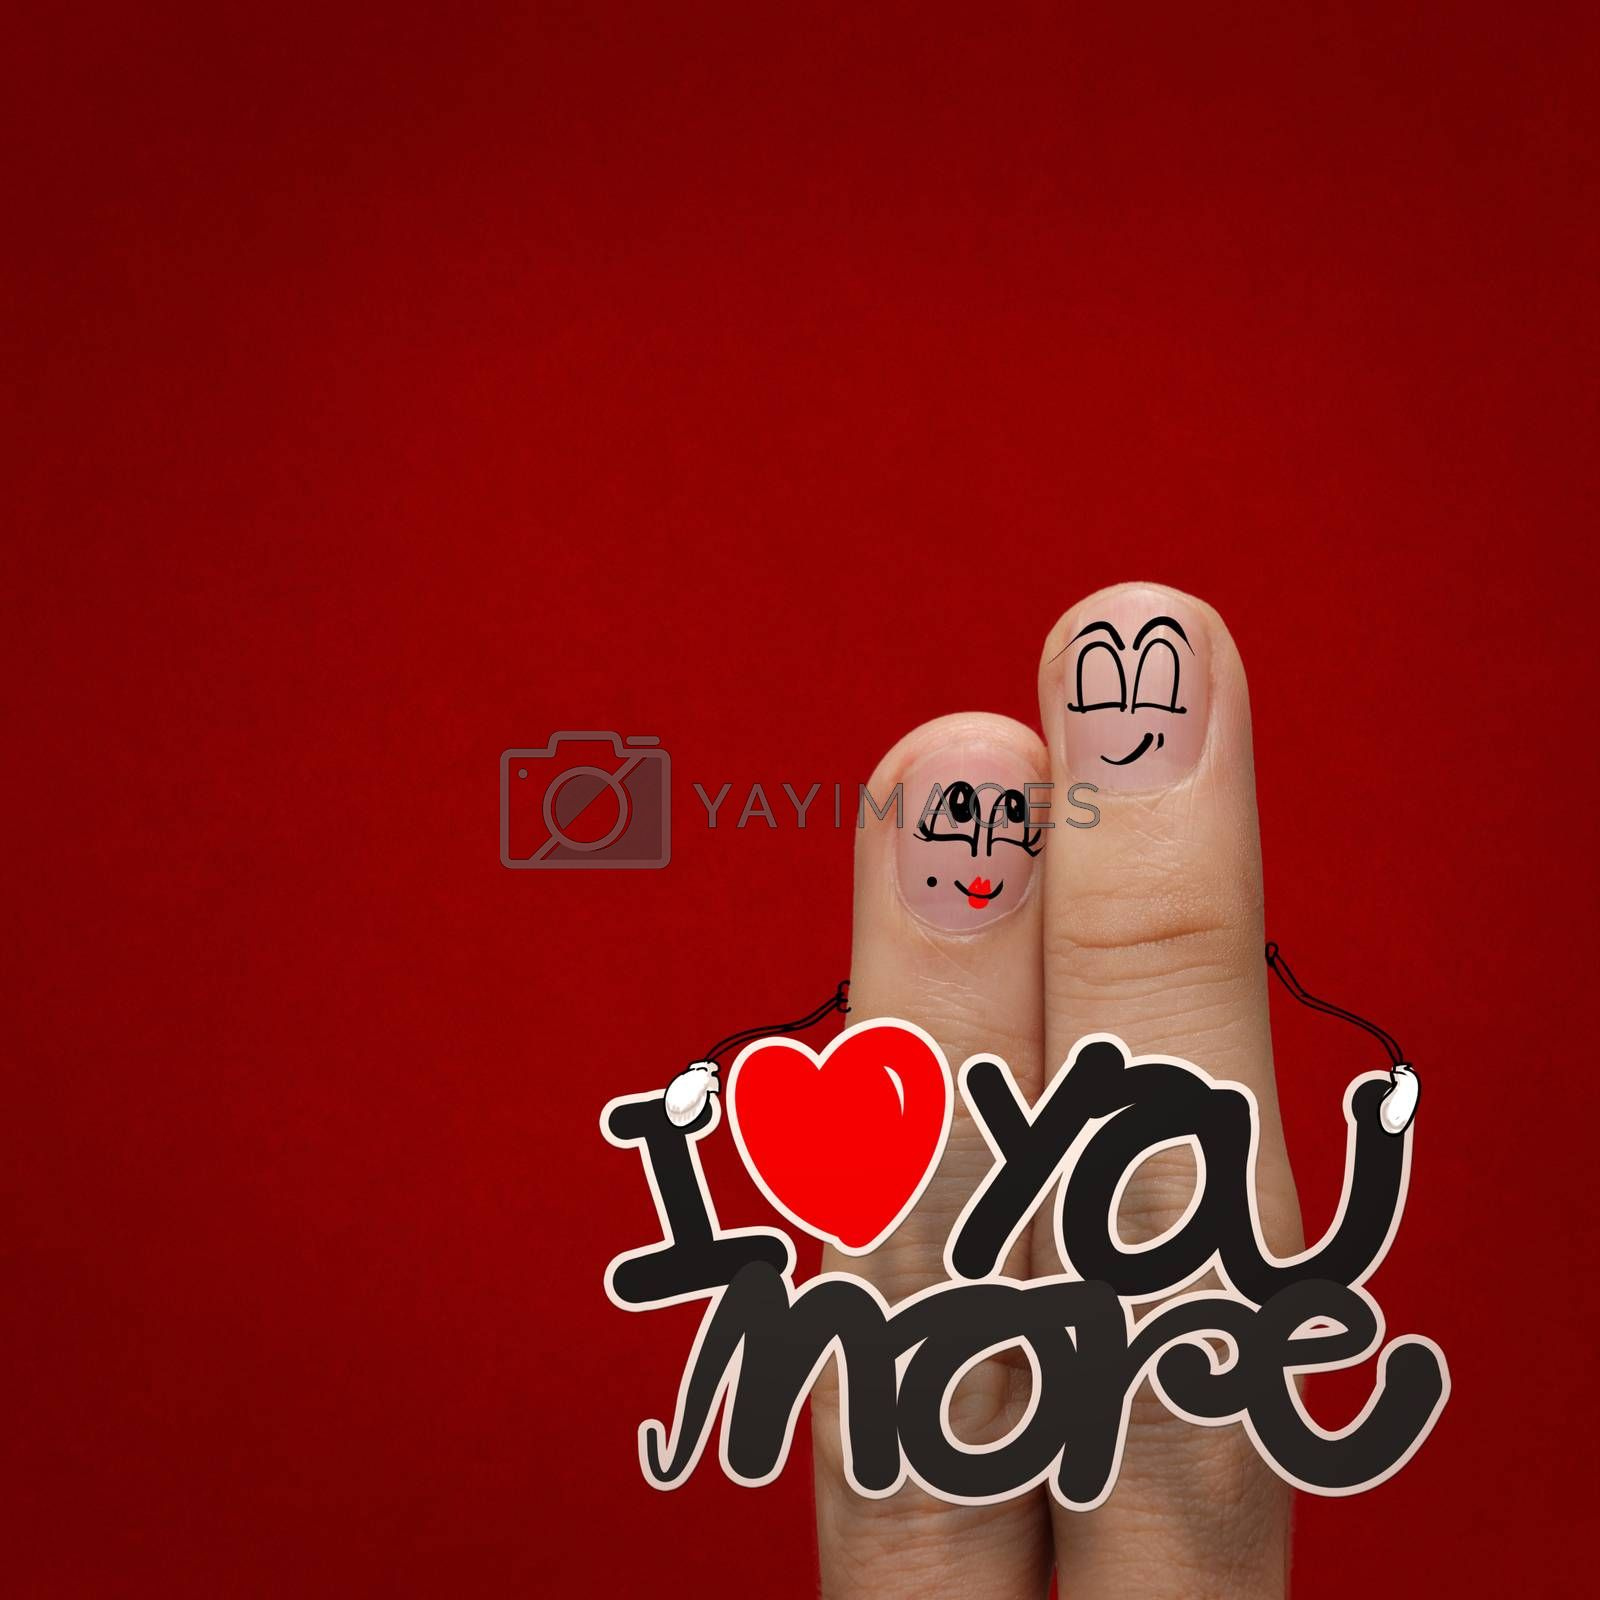 the happy finger couple in love with painted smiley and hold word love you more